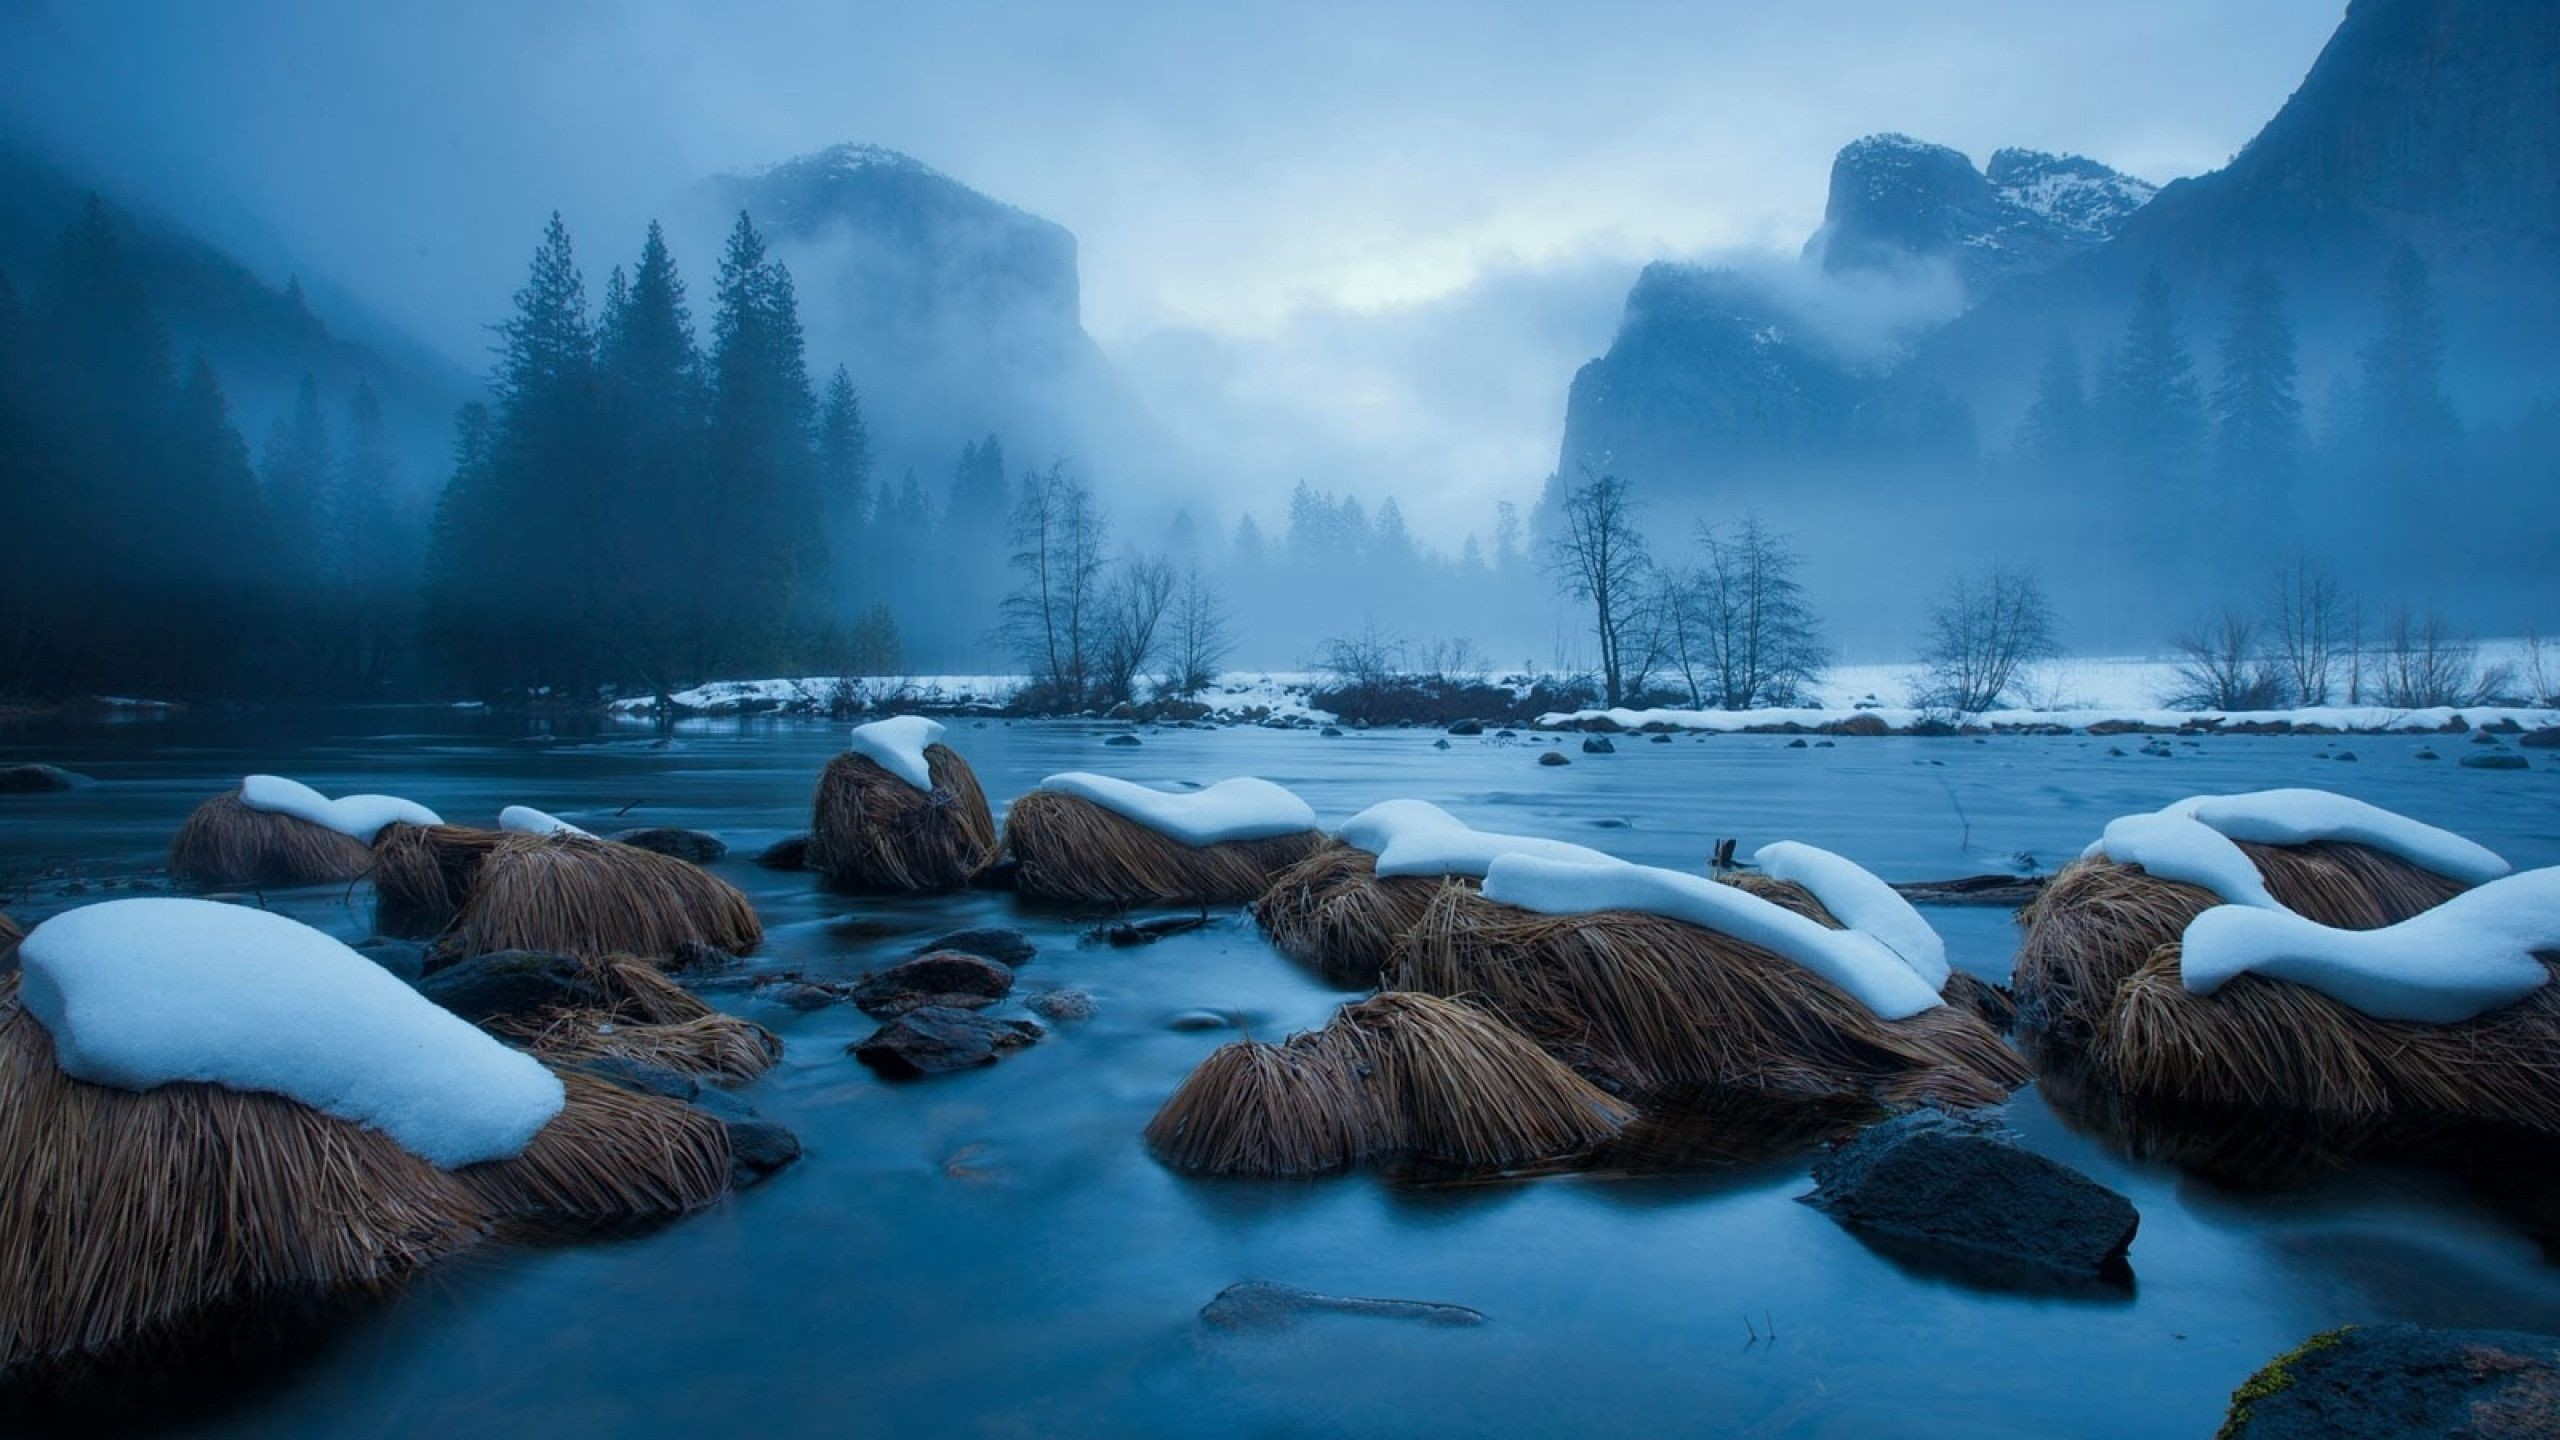 Most Viewed Free Ipad Wallpapers: Yosemite Wallpaper ·① Download Free Wallpapers For Desktop